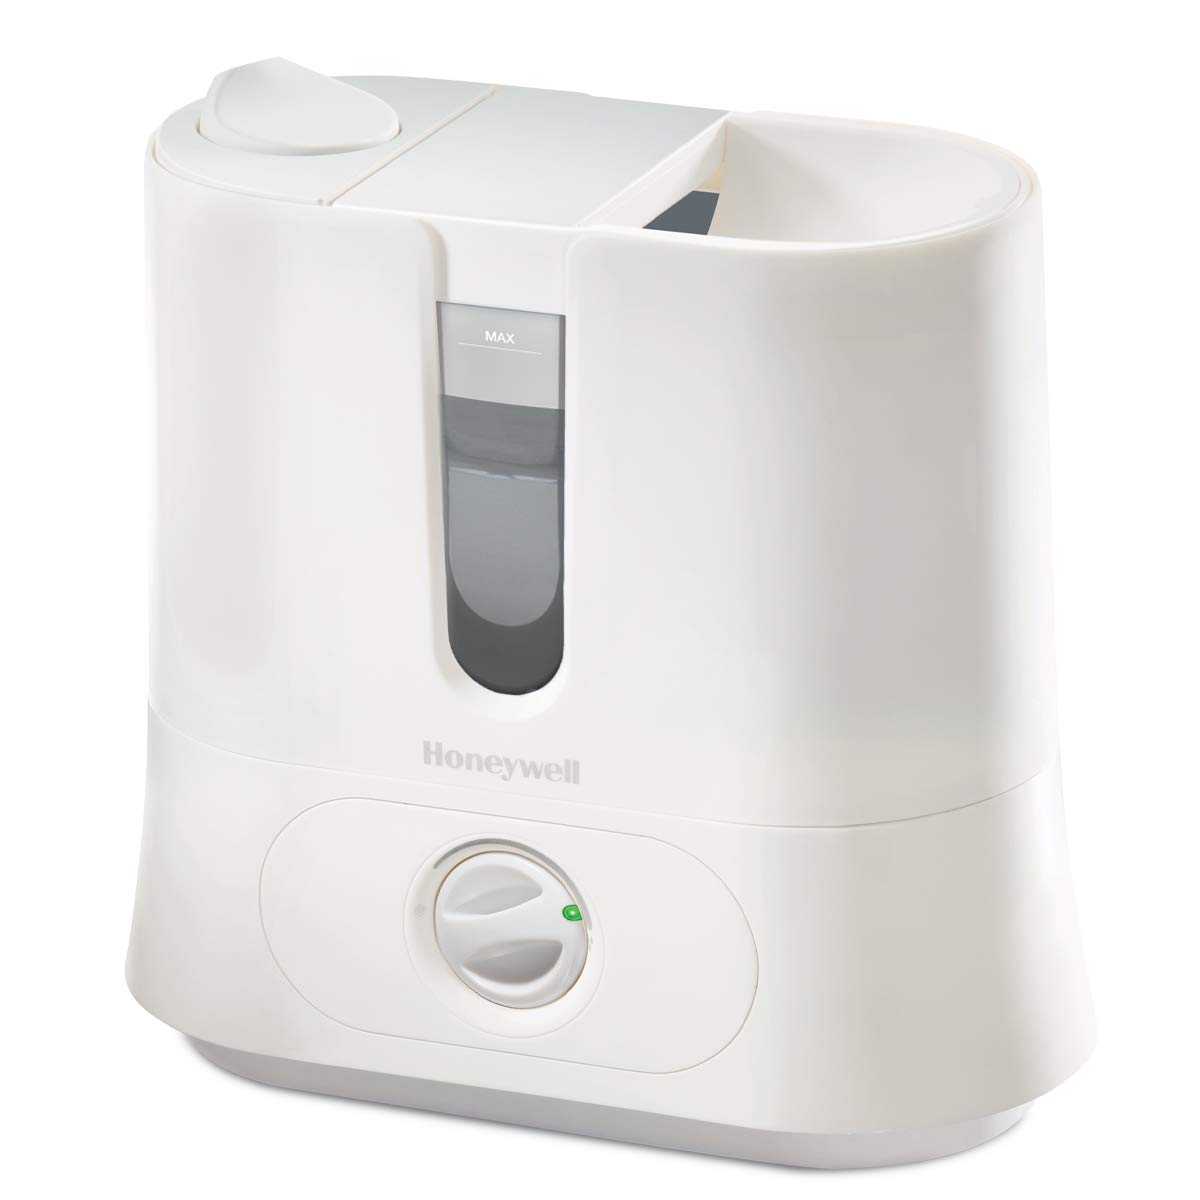 Honeywell Top Fill Cool Mist Humidifier White Ultra Quiet with Auto Shut-Off, Variable Settings, Removeable Tank & Rotating Mist Nozzle for Medium to Large Rooms, Bedroom, Baby Room